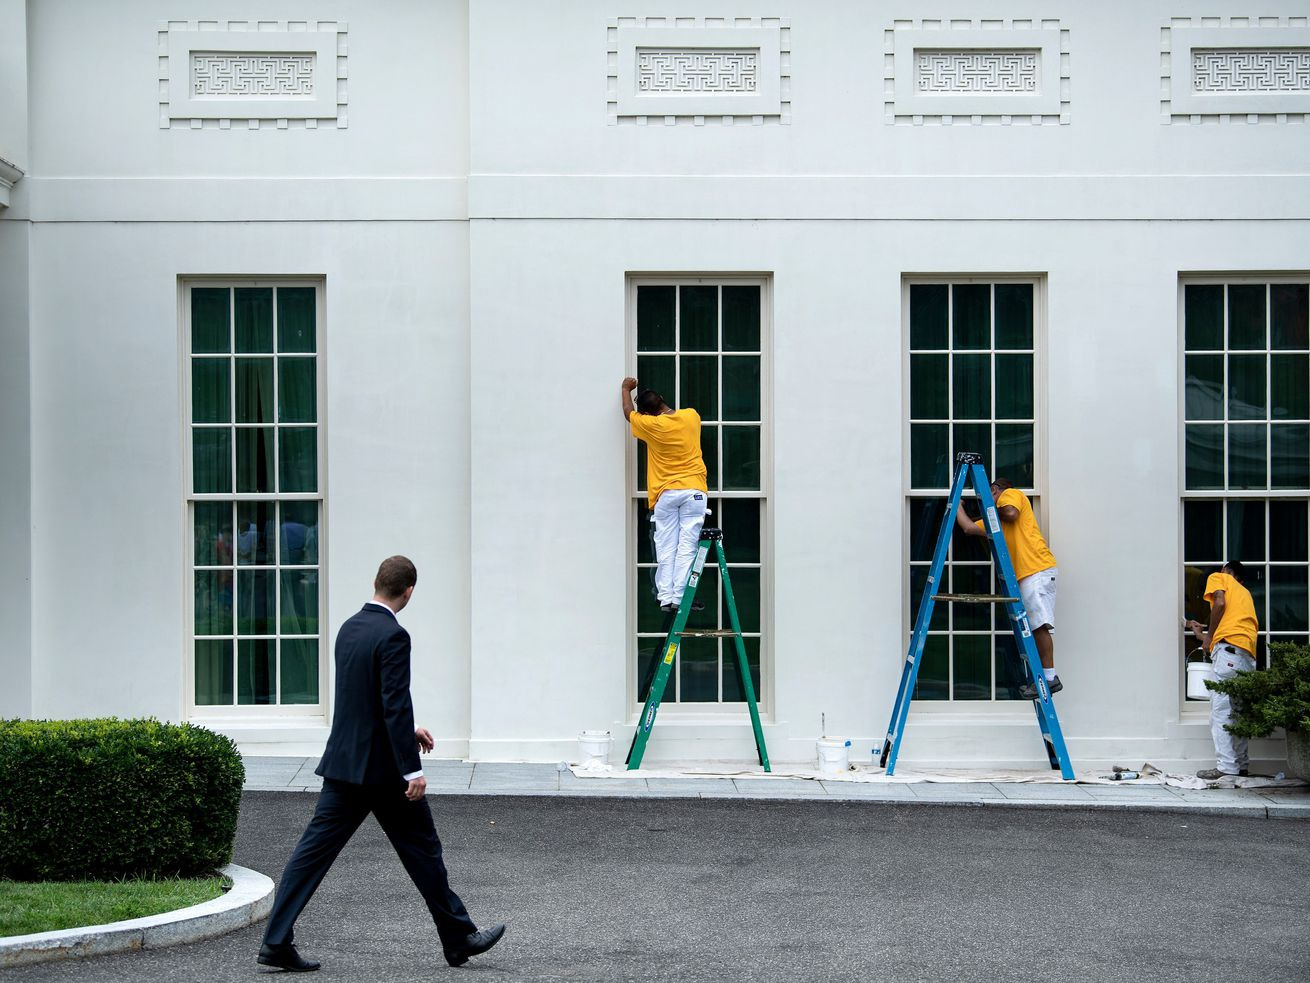 Three men in yellow shirts touch up the paint around the windows on the first floor of the White House.